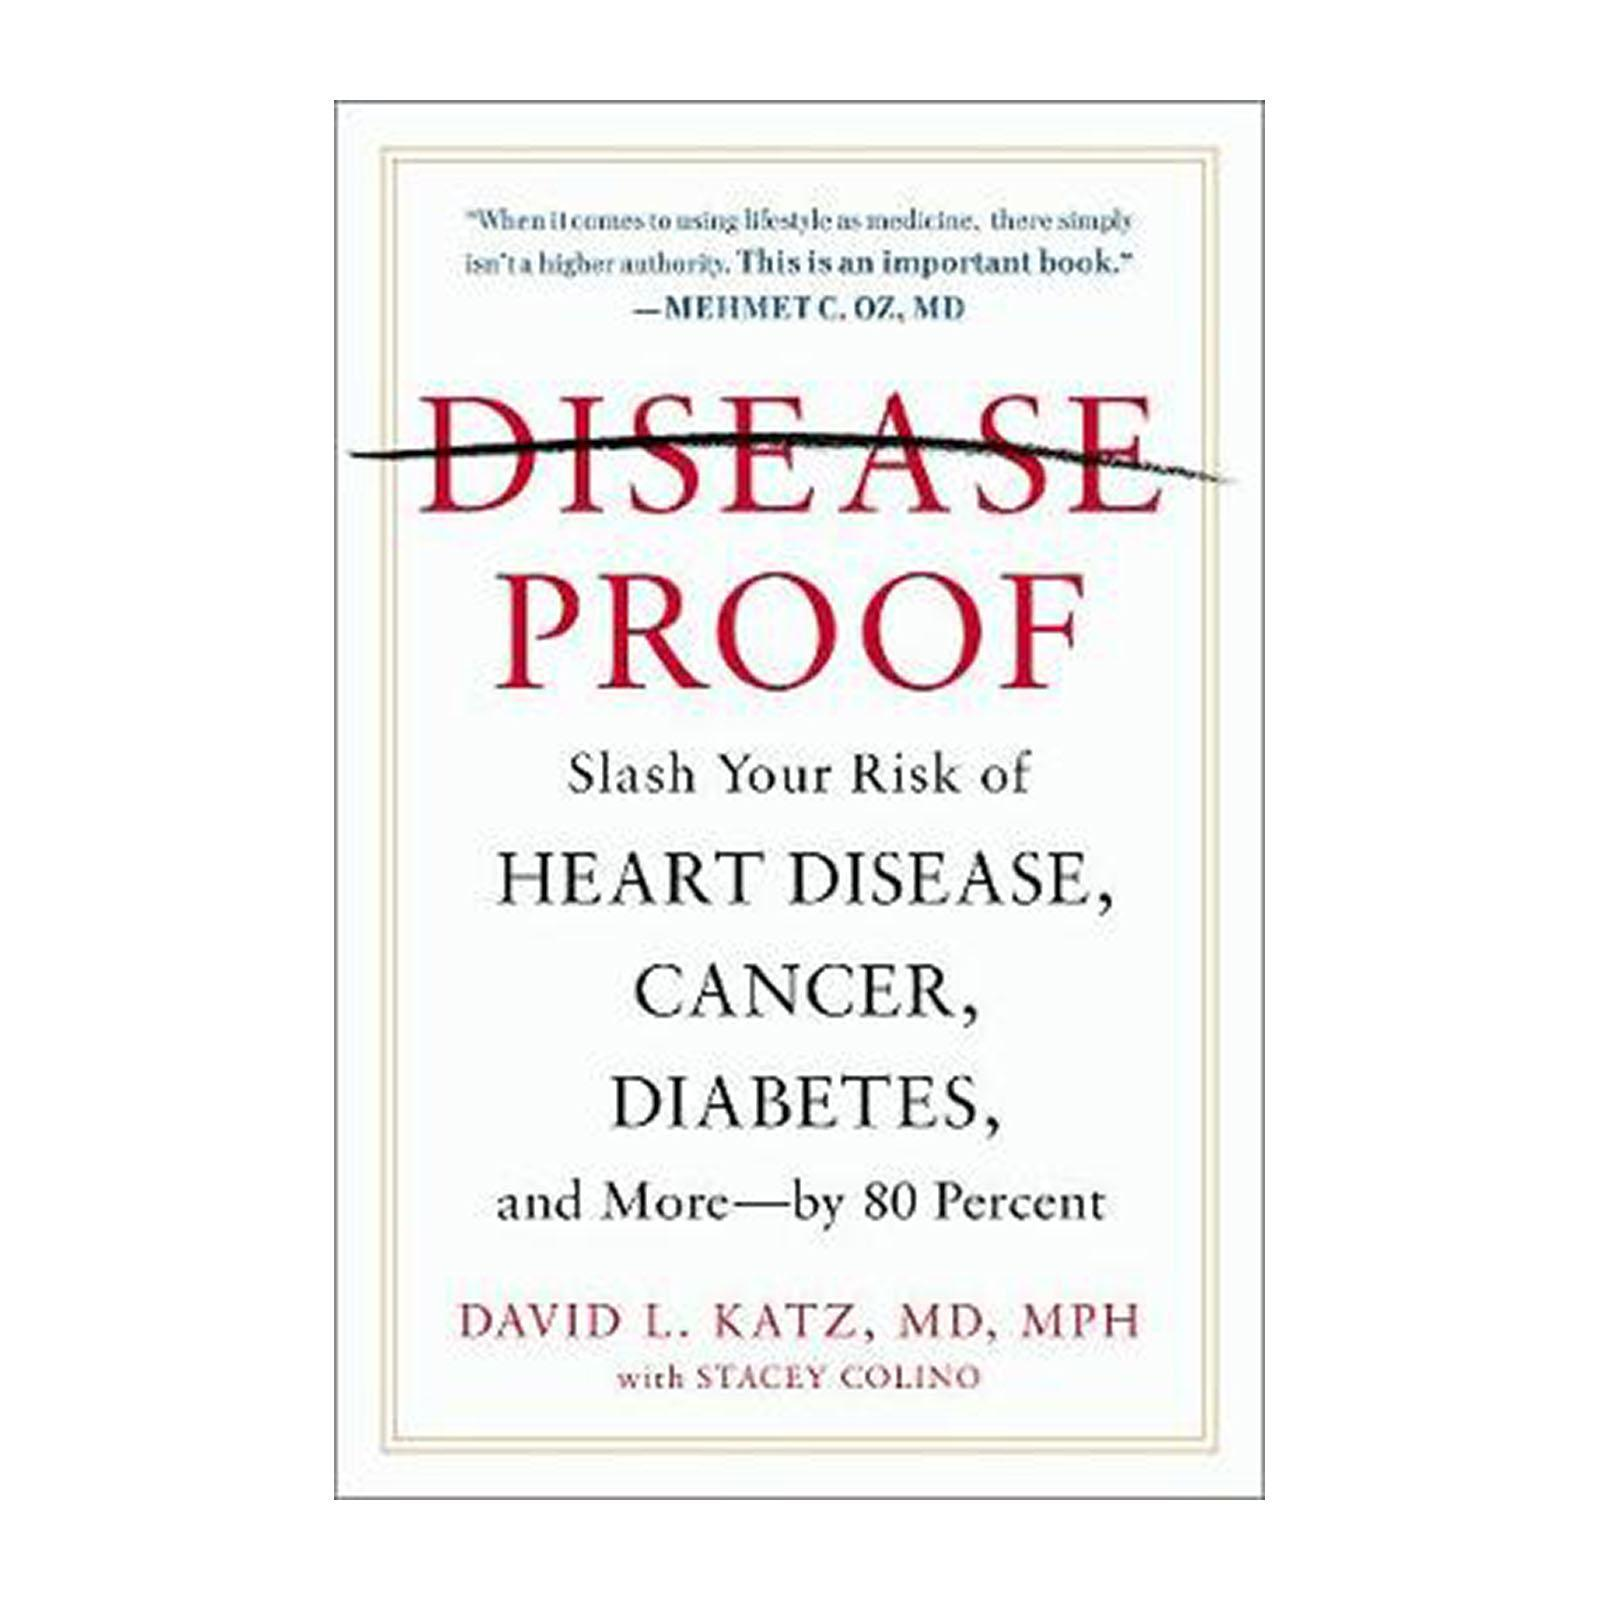 Disease-Proof: Slash Your Risk Of Heart Disease And Cancer And Diabetes And More - By 80 Percent (Paperback)